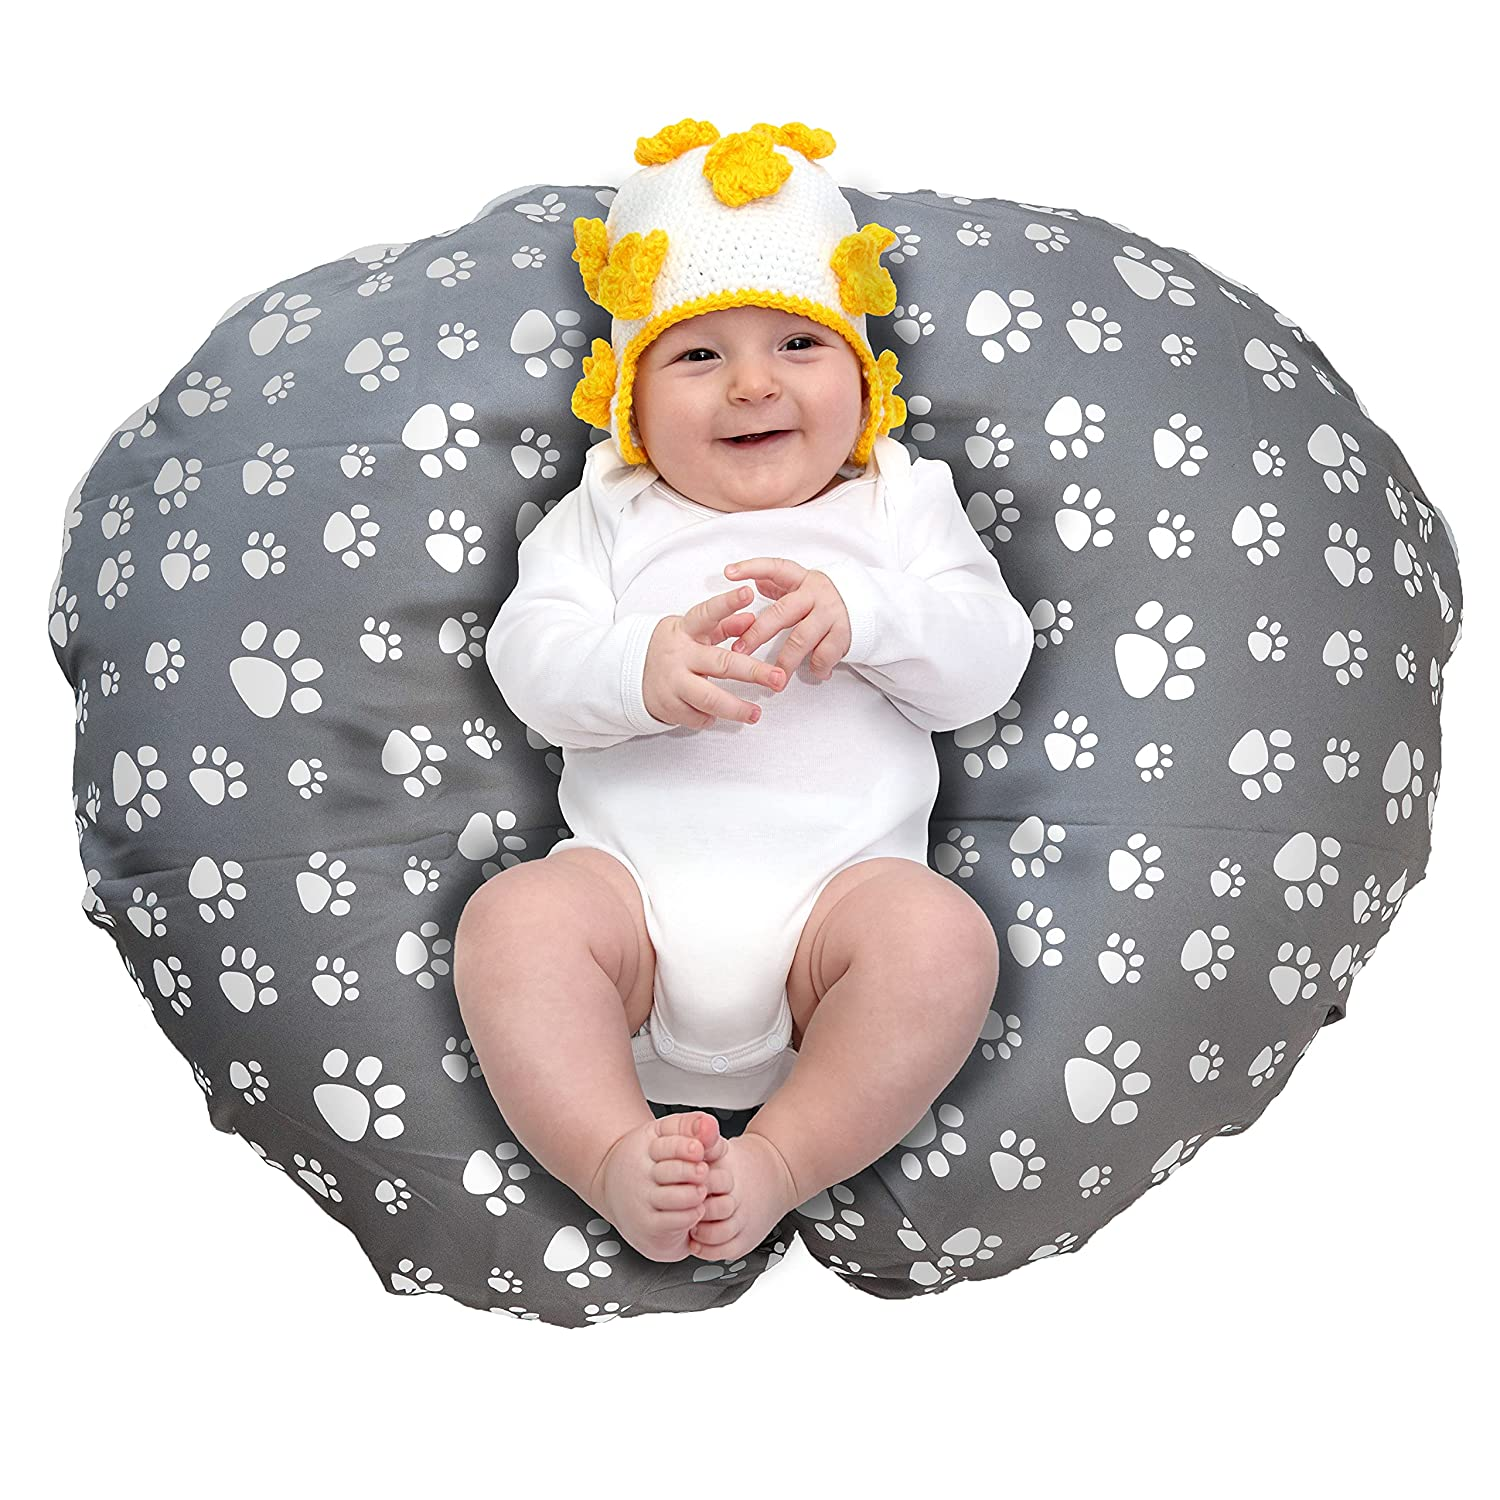 Removable Cover for Newborn Baby Lounger/Water Resistant/Soft and Comfy/Hypoallergenic/Premium Quality/Easy Cleaning/Grey Paw Print (Lounger Pillow Not Included)